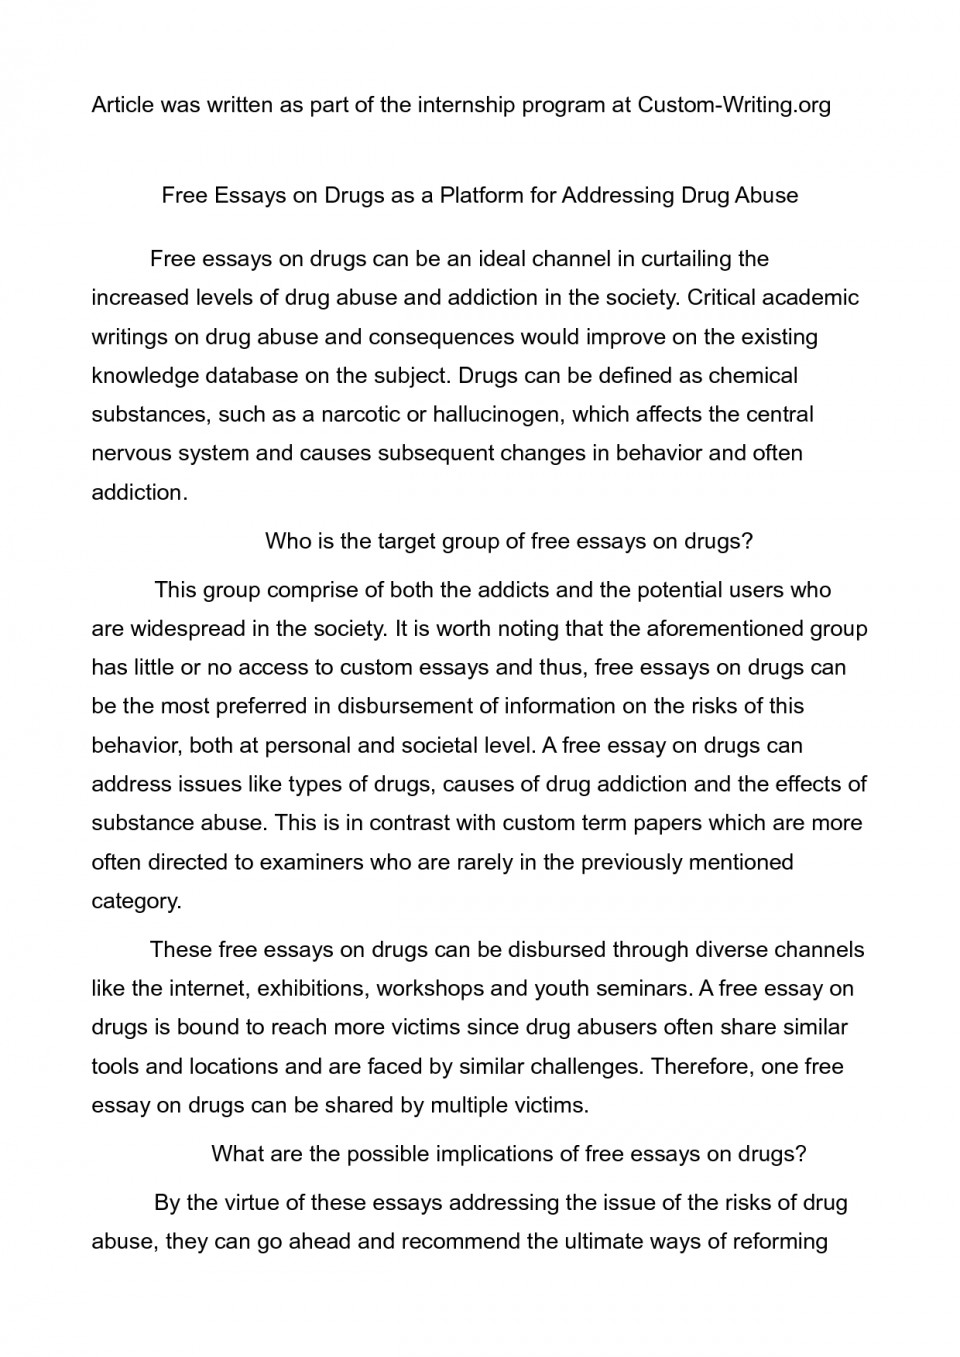 009 Argumentative Essay About Drugs Amazing Definition Pdf Sample Middle School Topics For High 960